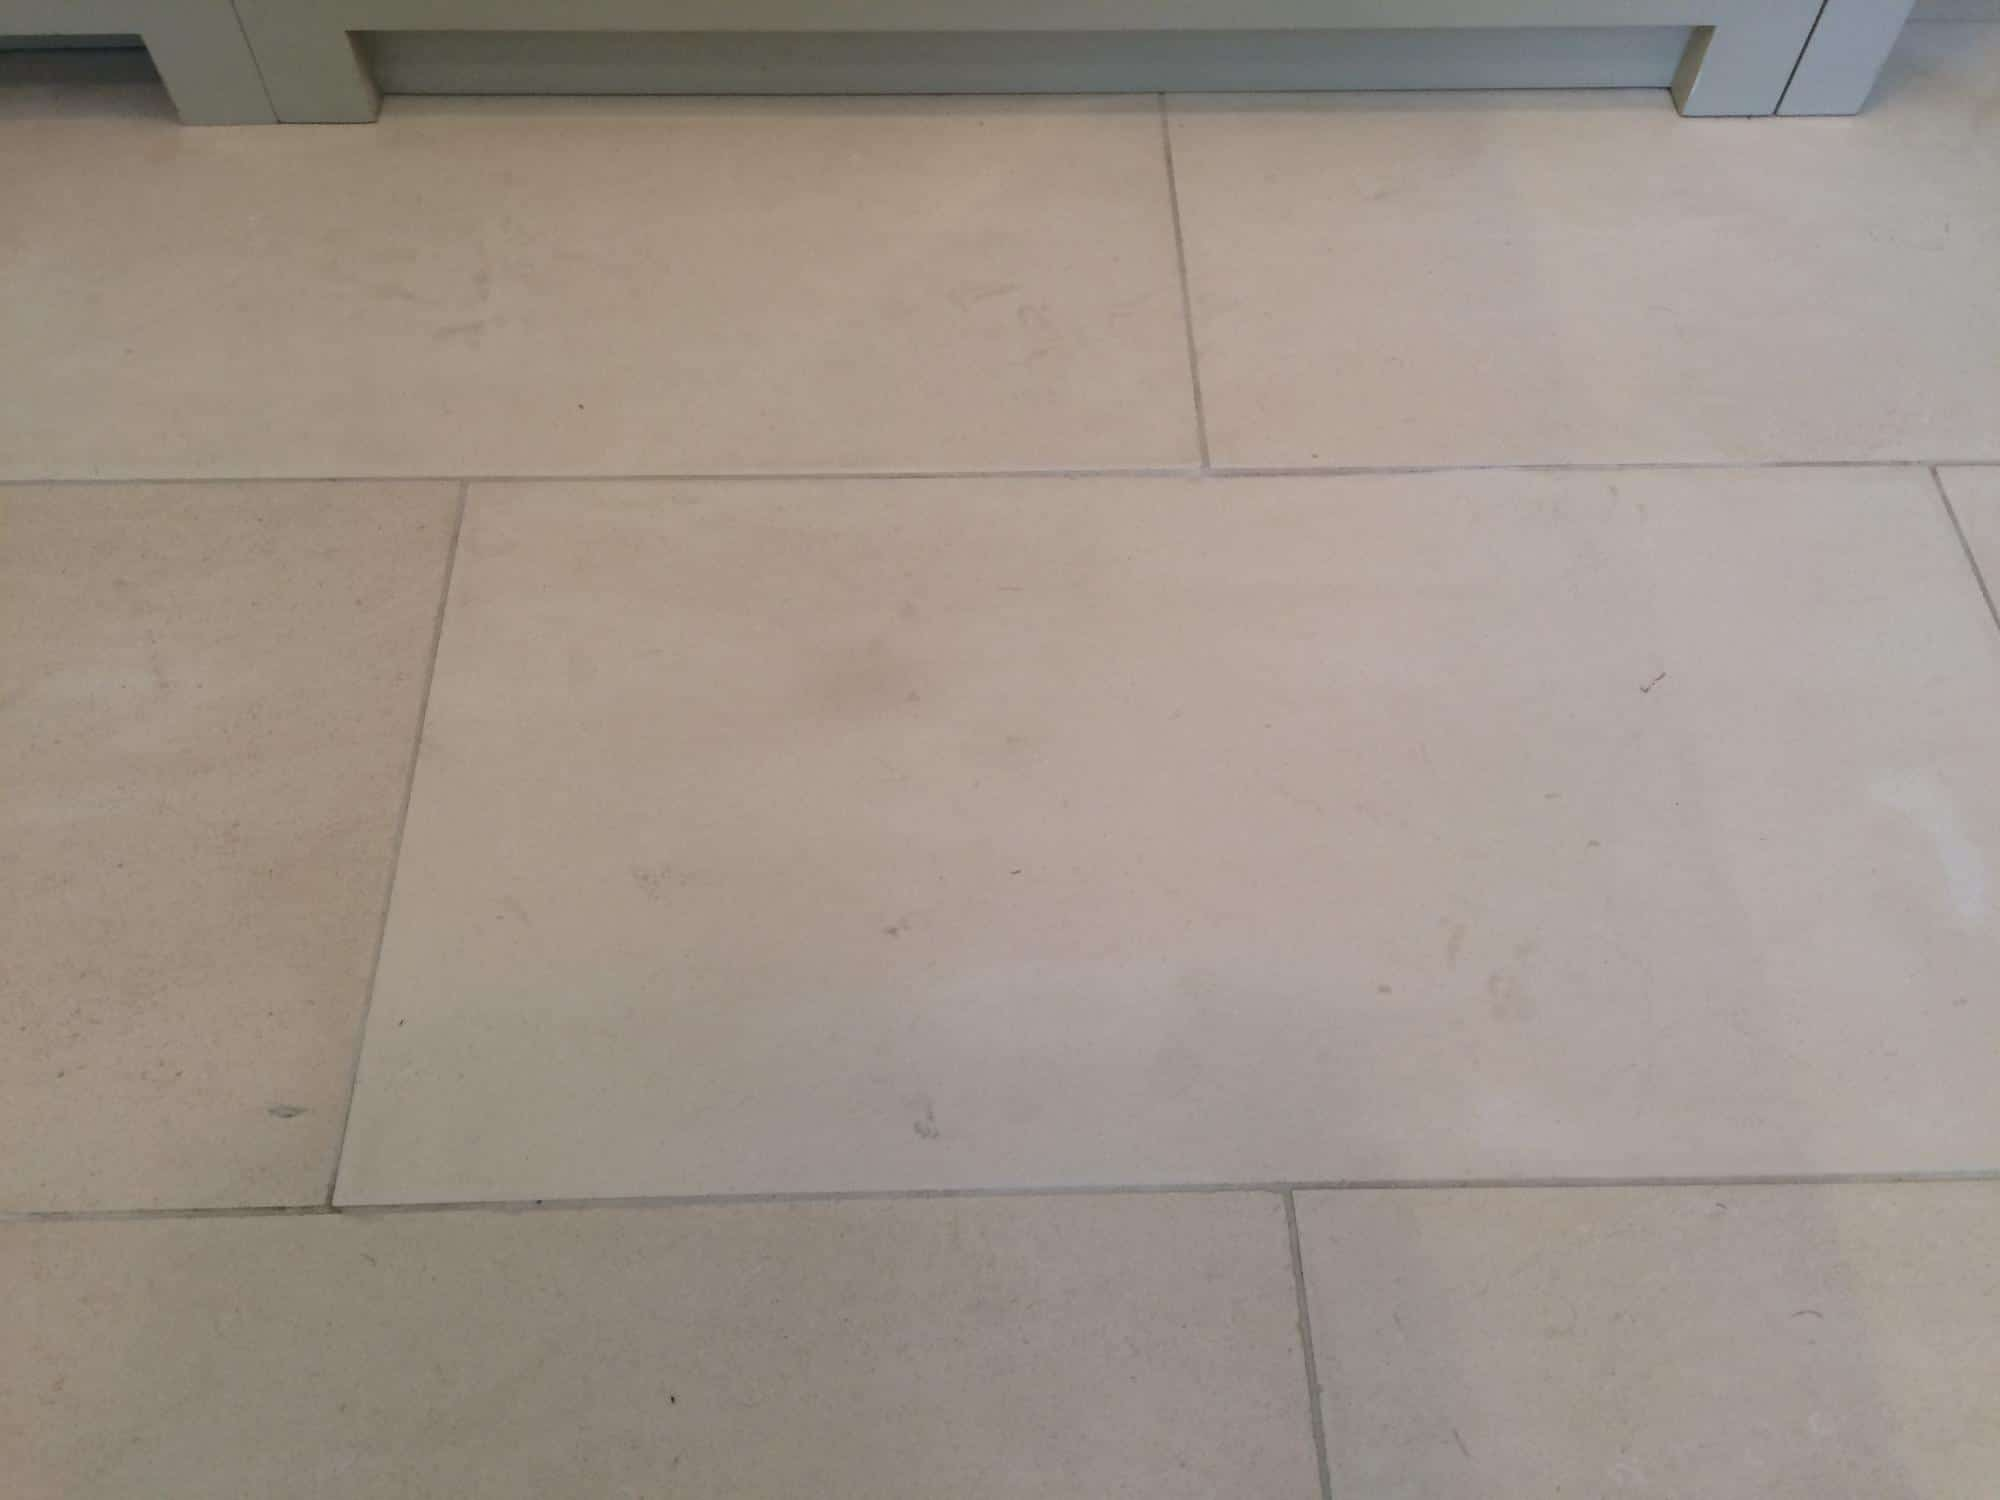 Kitchen Lime Stone Floor Tile Stain Removal Bespoke Repairs